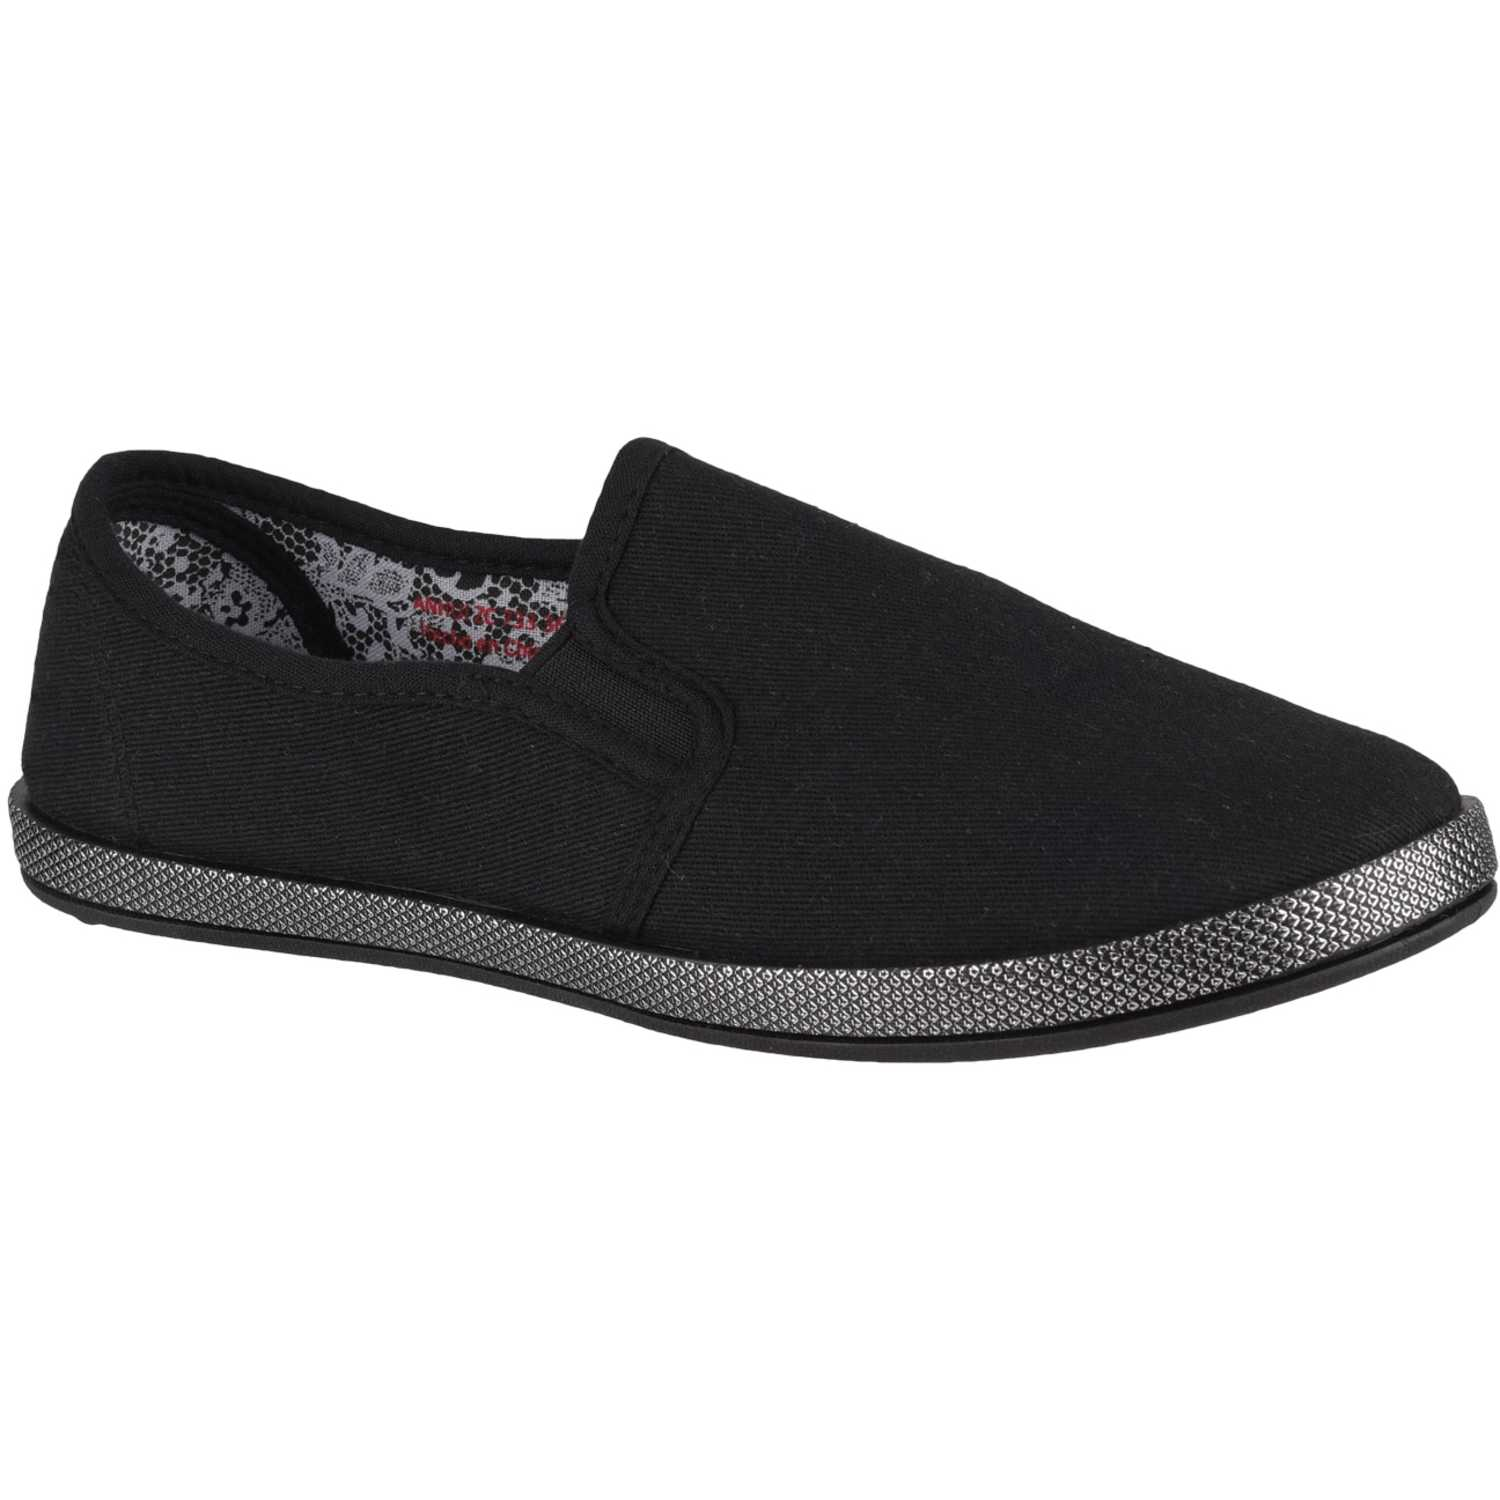 Platanitos zc 733 Negro Zapatillas Fashion